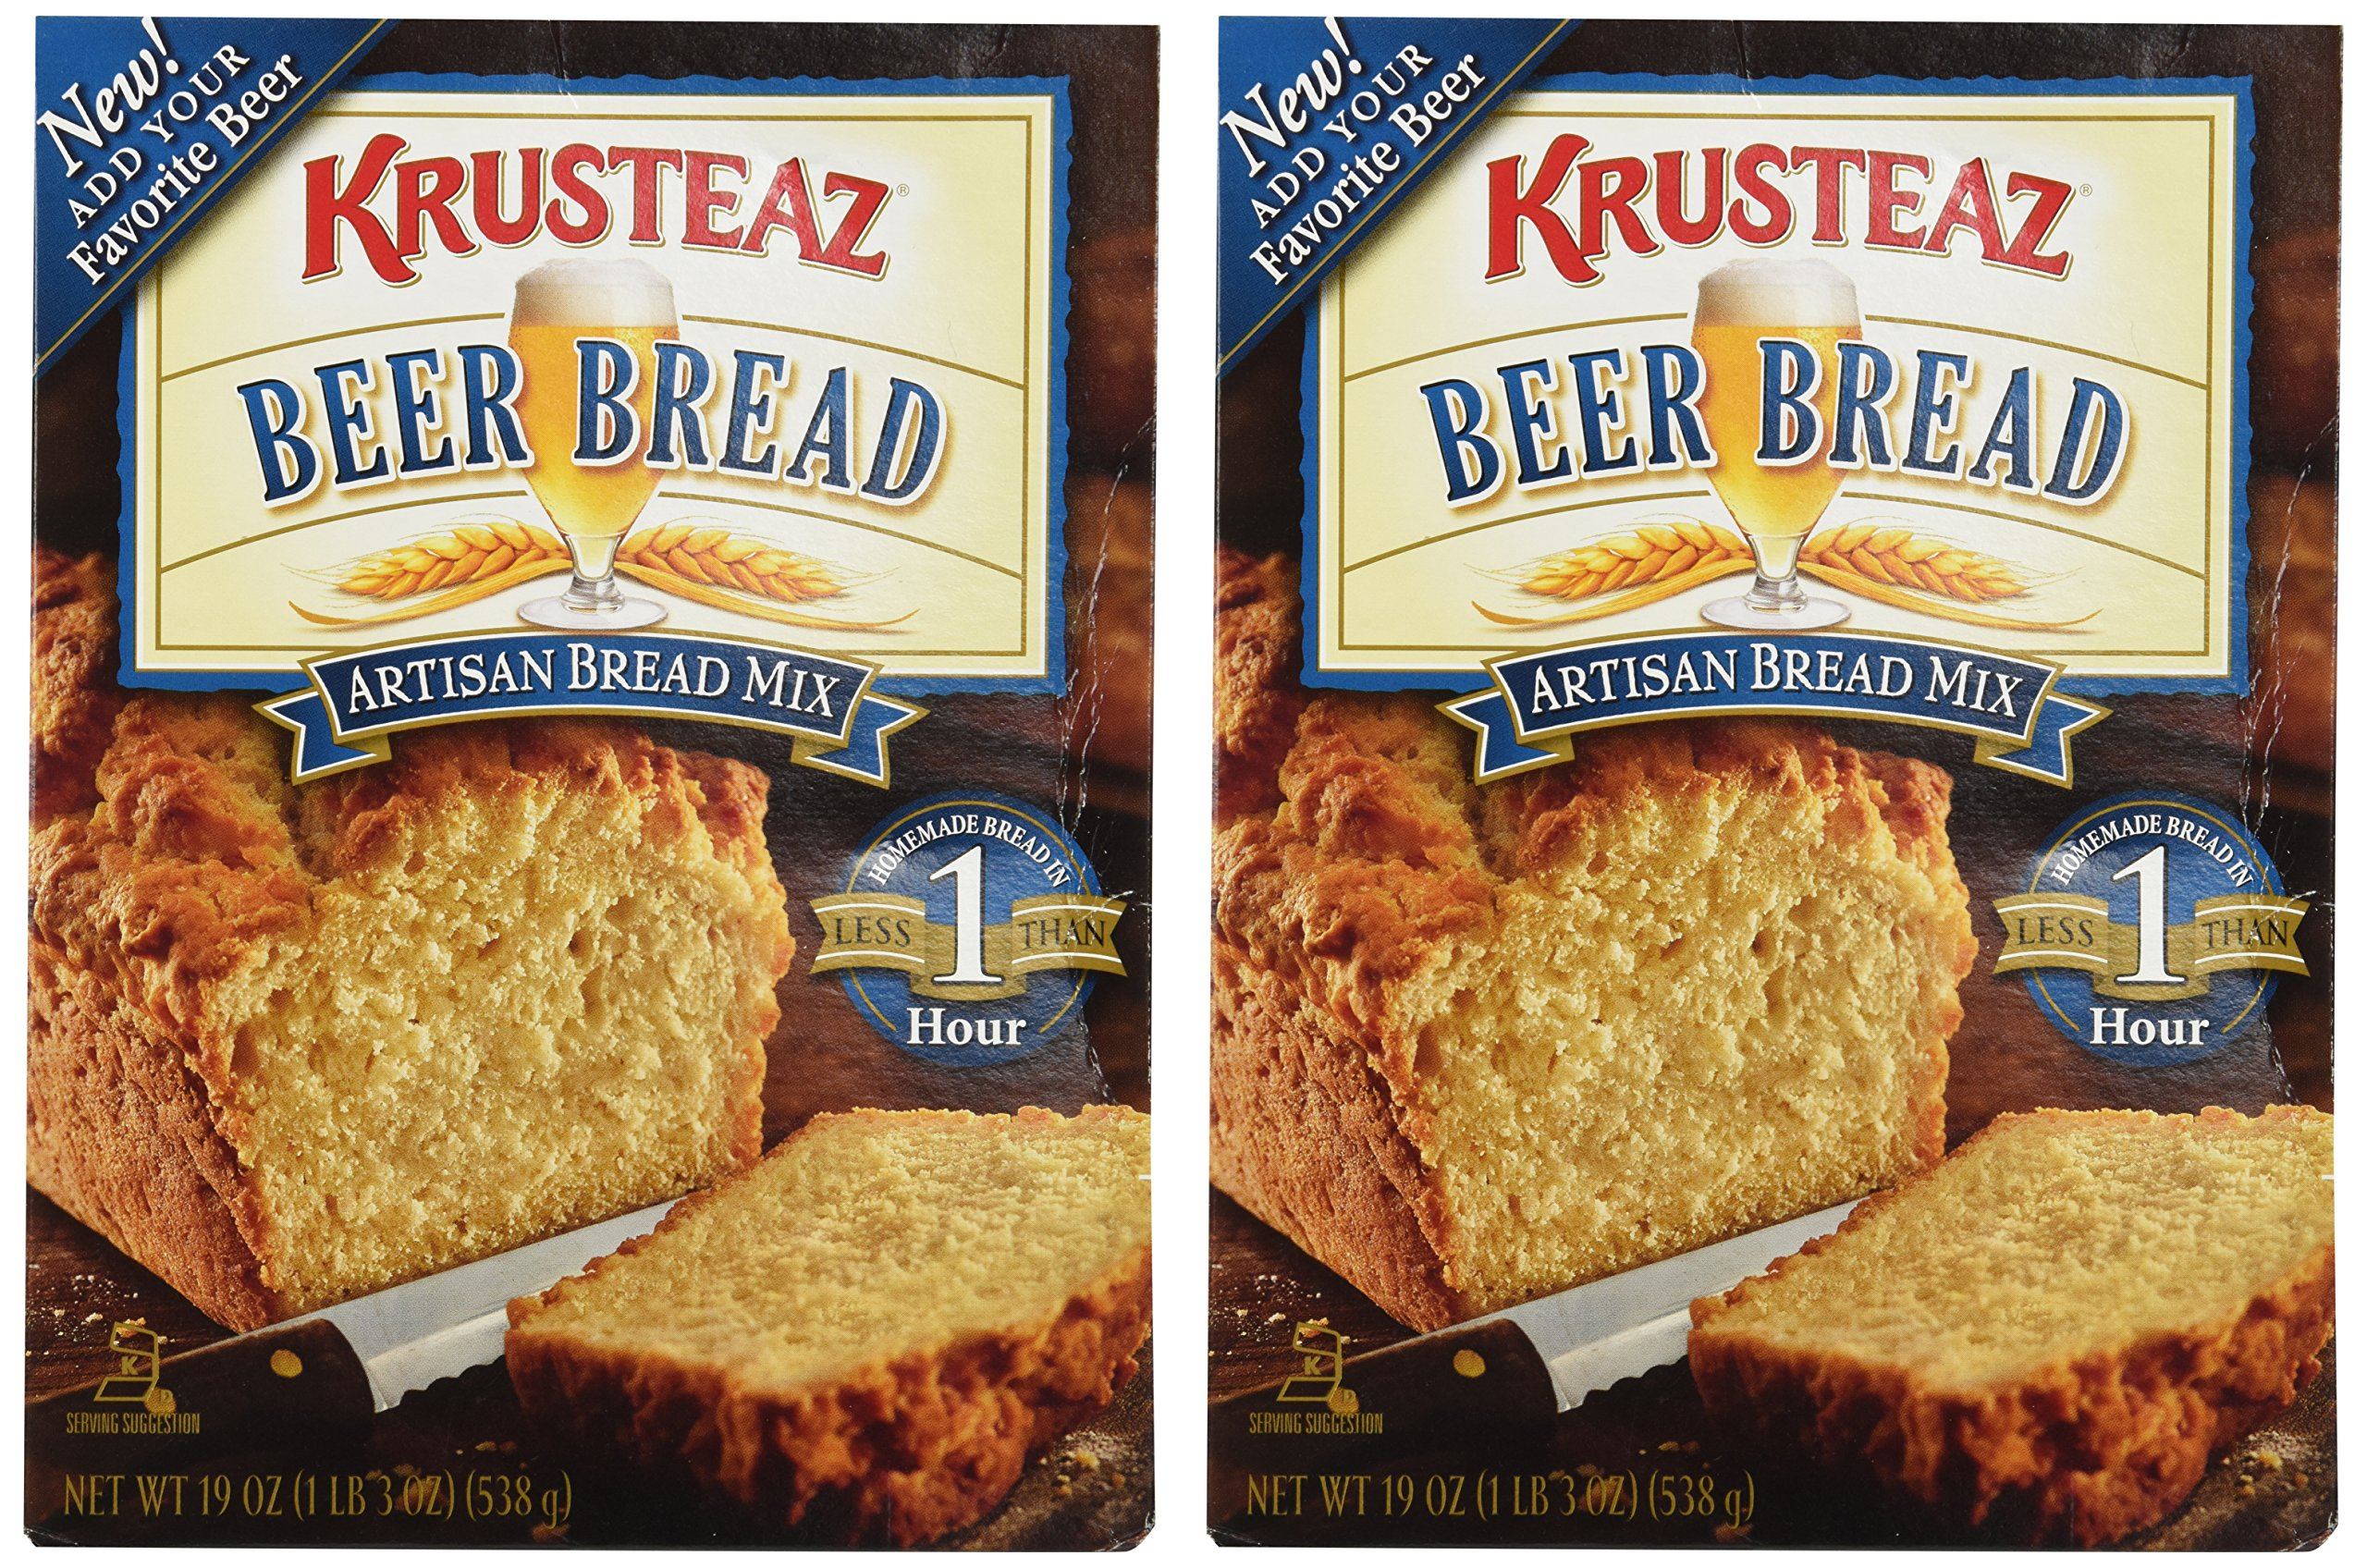 Krusteaz No Knead Artisan Bread Mix: Beer Bread (Pack of 2) 19 oz Boxes